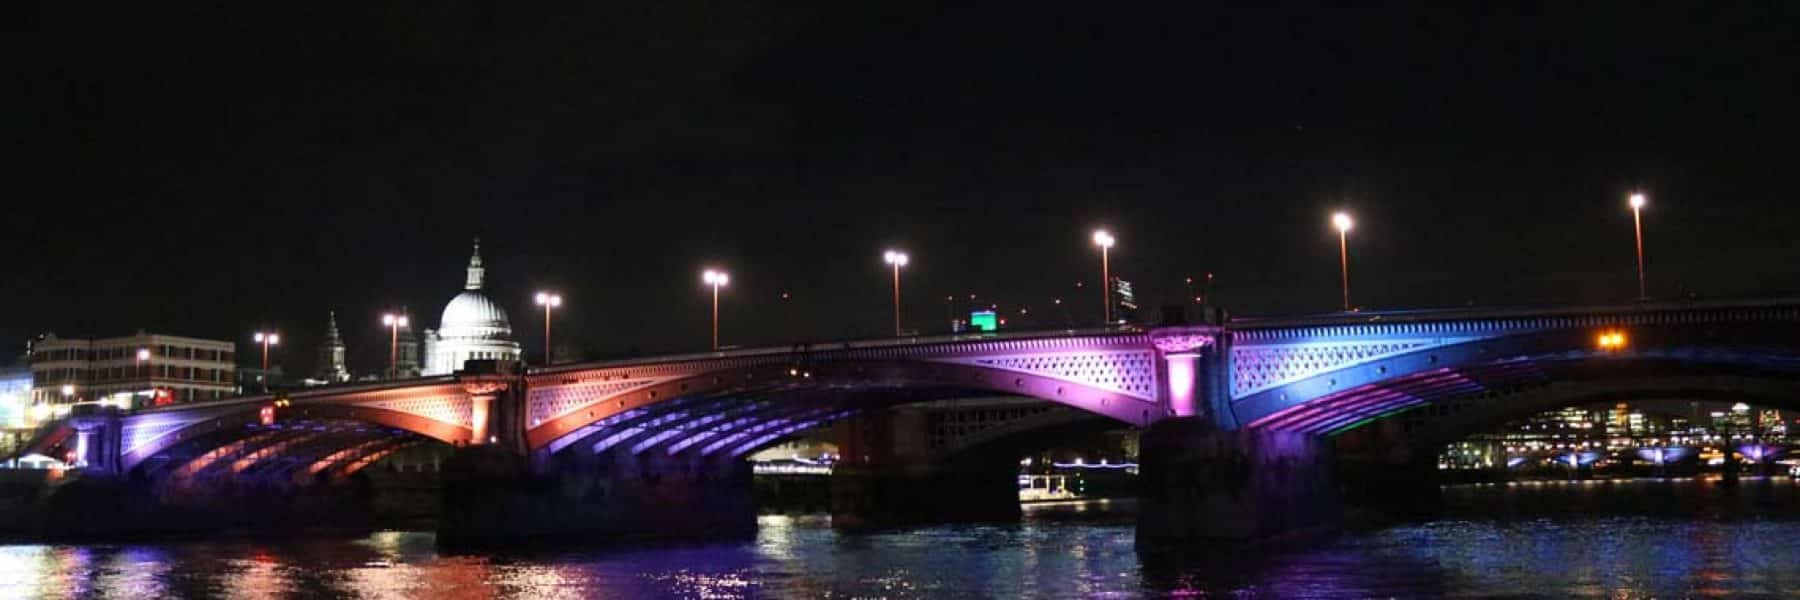 Blackfriars Road Bridge